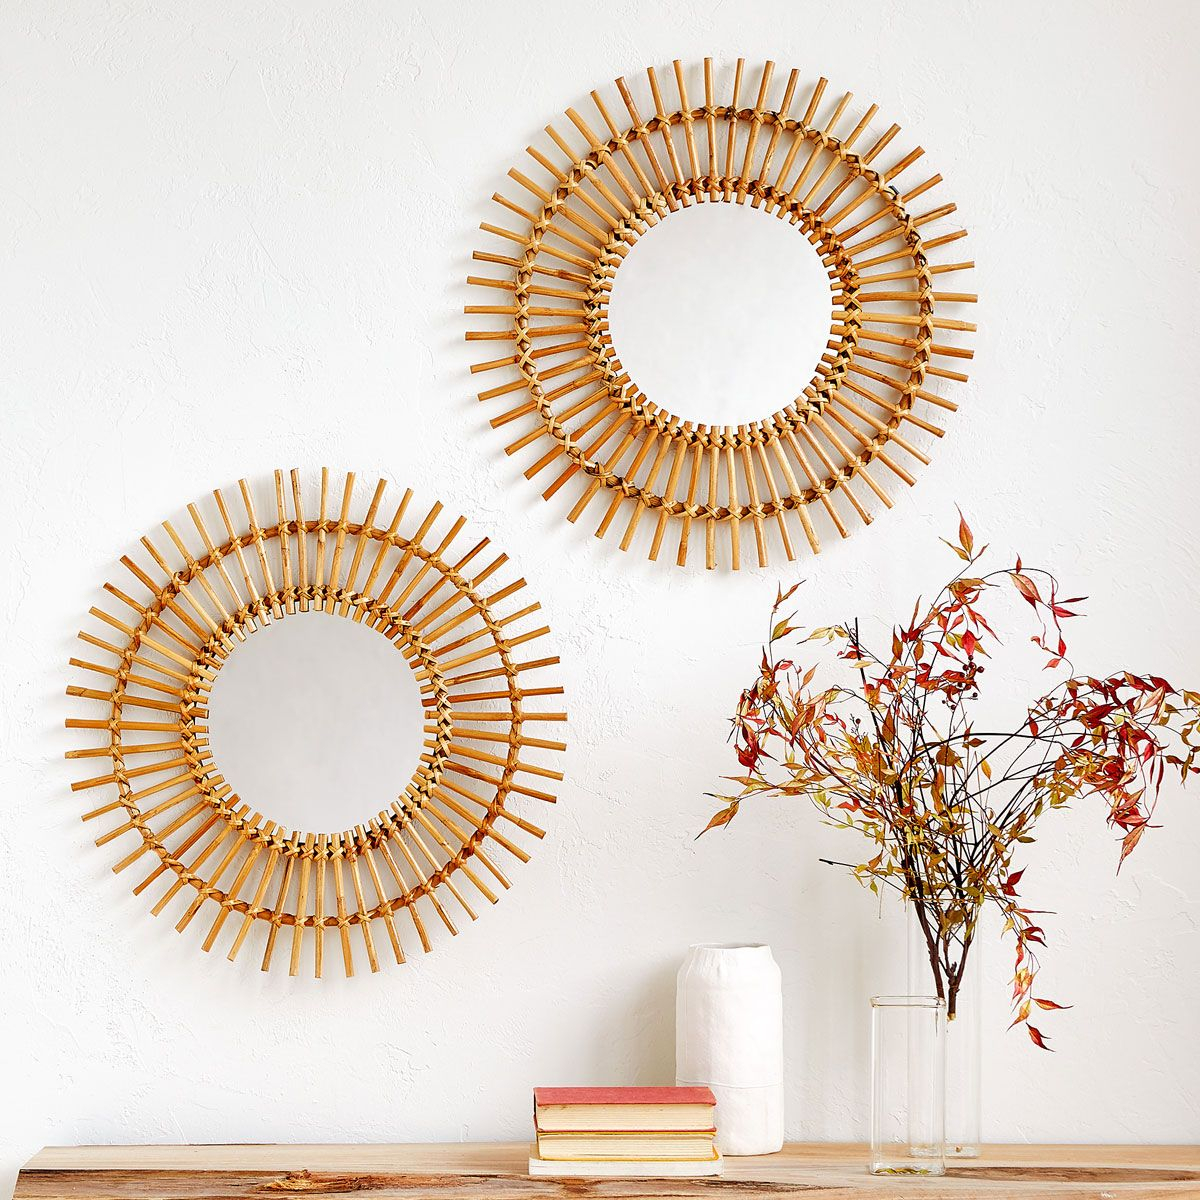 Image 1 Of The Product Sun Shaped Bamboo Mirror | Drayton In Pertaining To Sun Shaped Wall Mirrors (View 9 of 20)